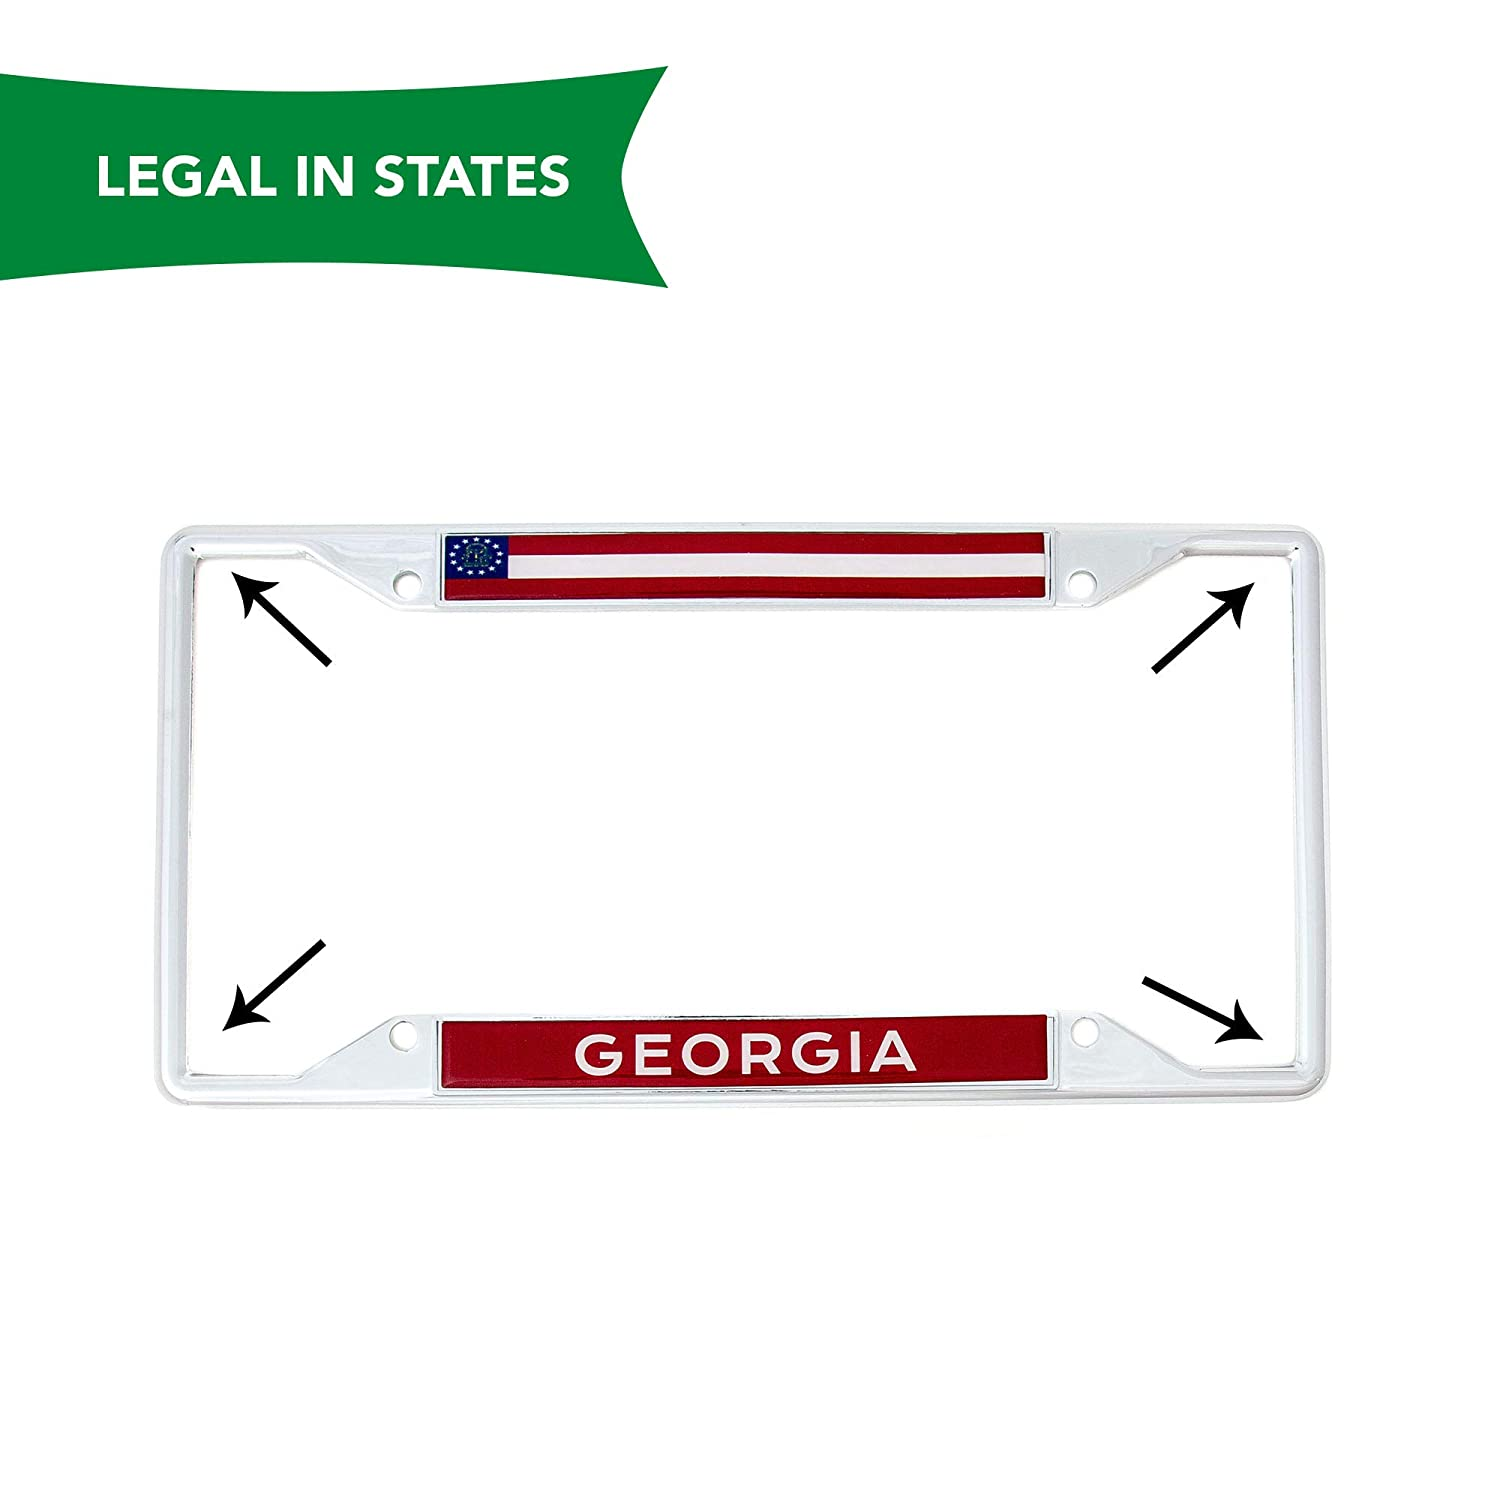 Desert Cactus State of Georgia Flag License Plate Frame for Front Back of Car Vehicle Truck